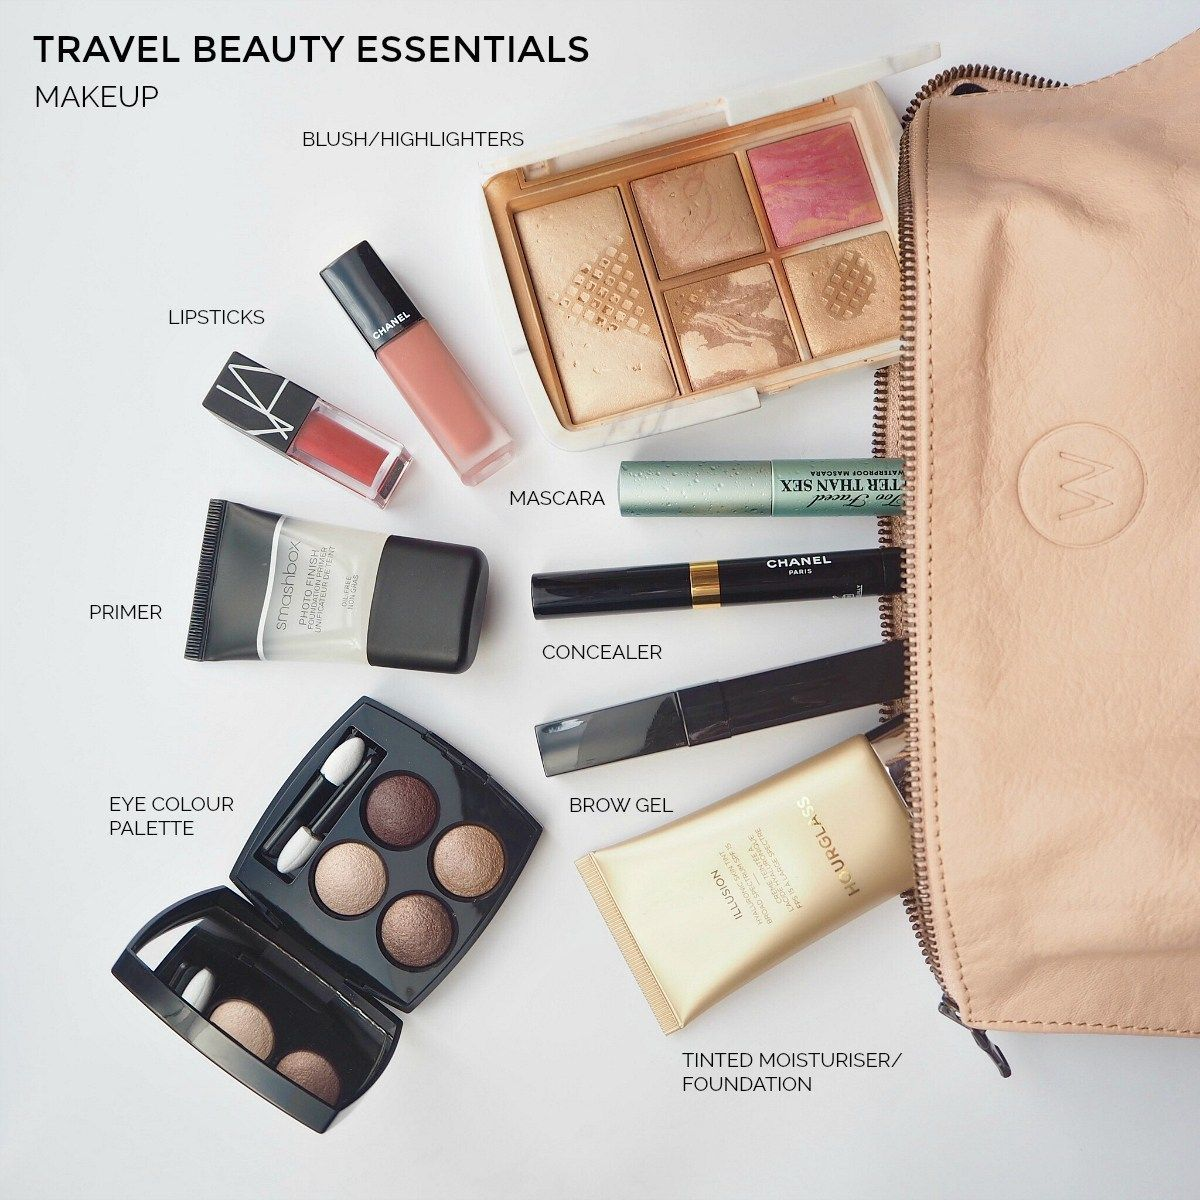 Checklist and tips travel beauty essentials to pack for